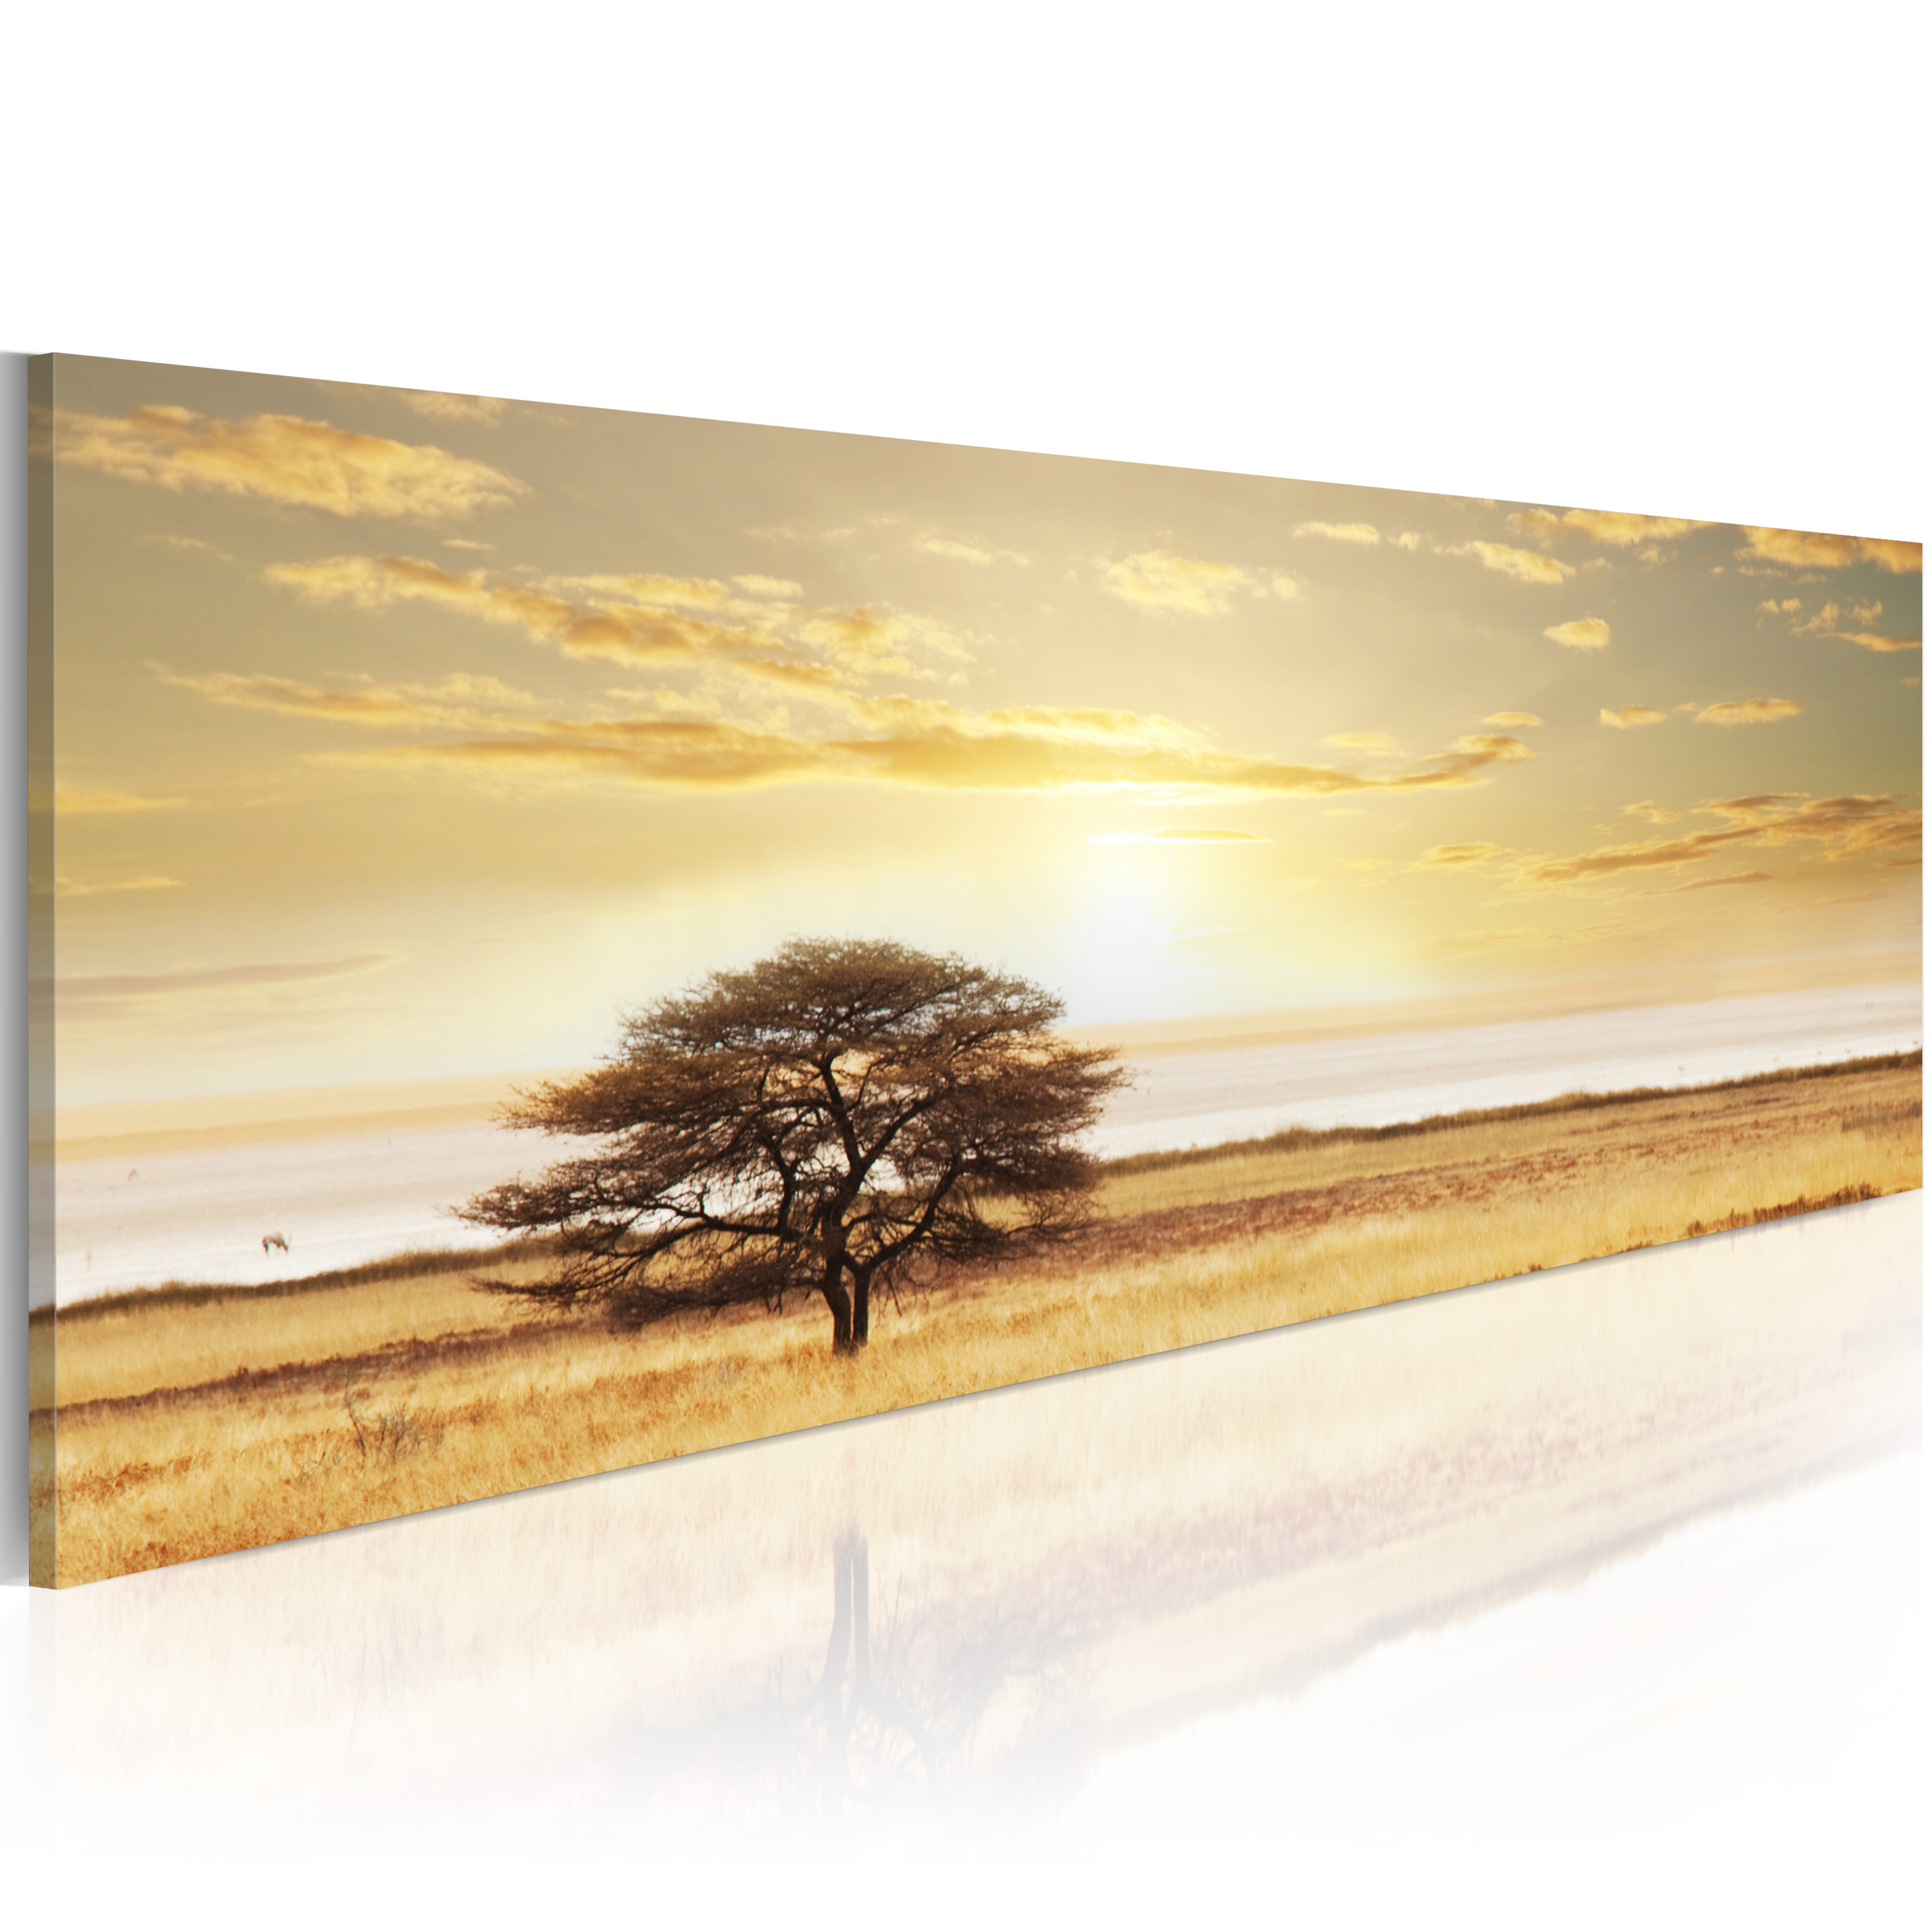 Quadro - Lonely tree on savannah 120X40 cm